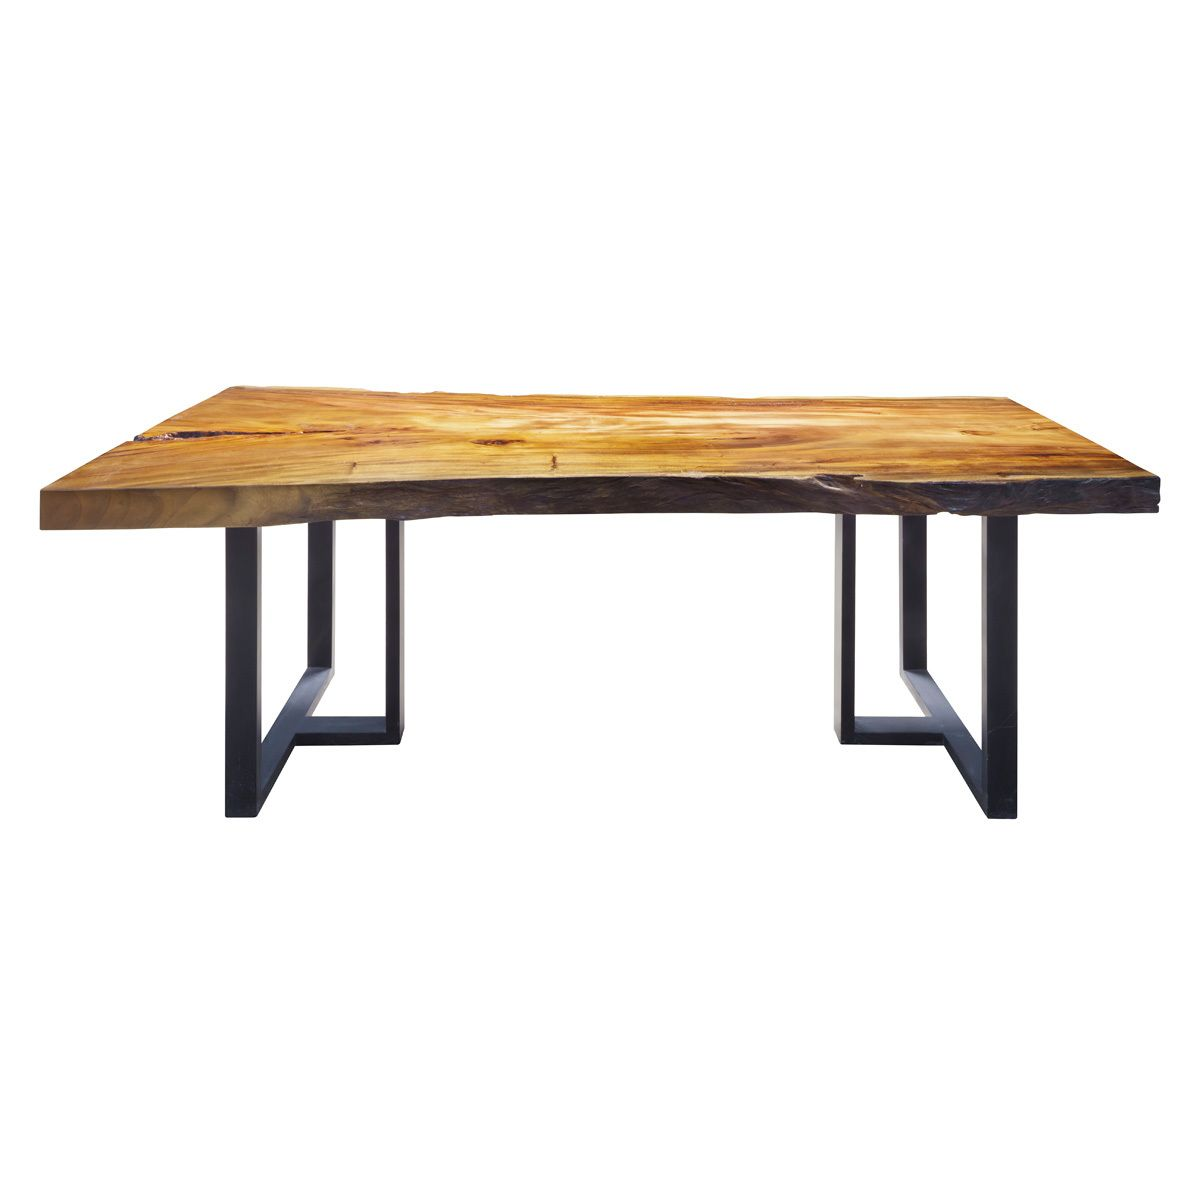 Live Edge Dining Table Made From Acacia Wood On Iron Legs Width